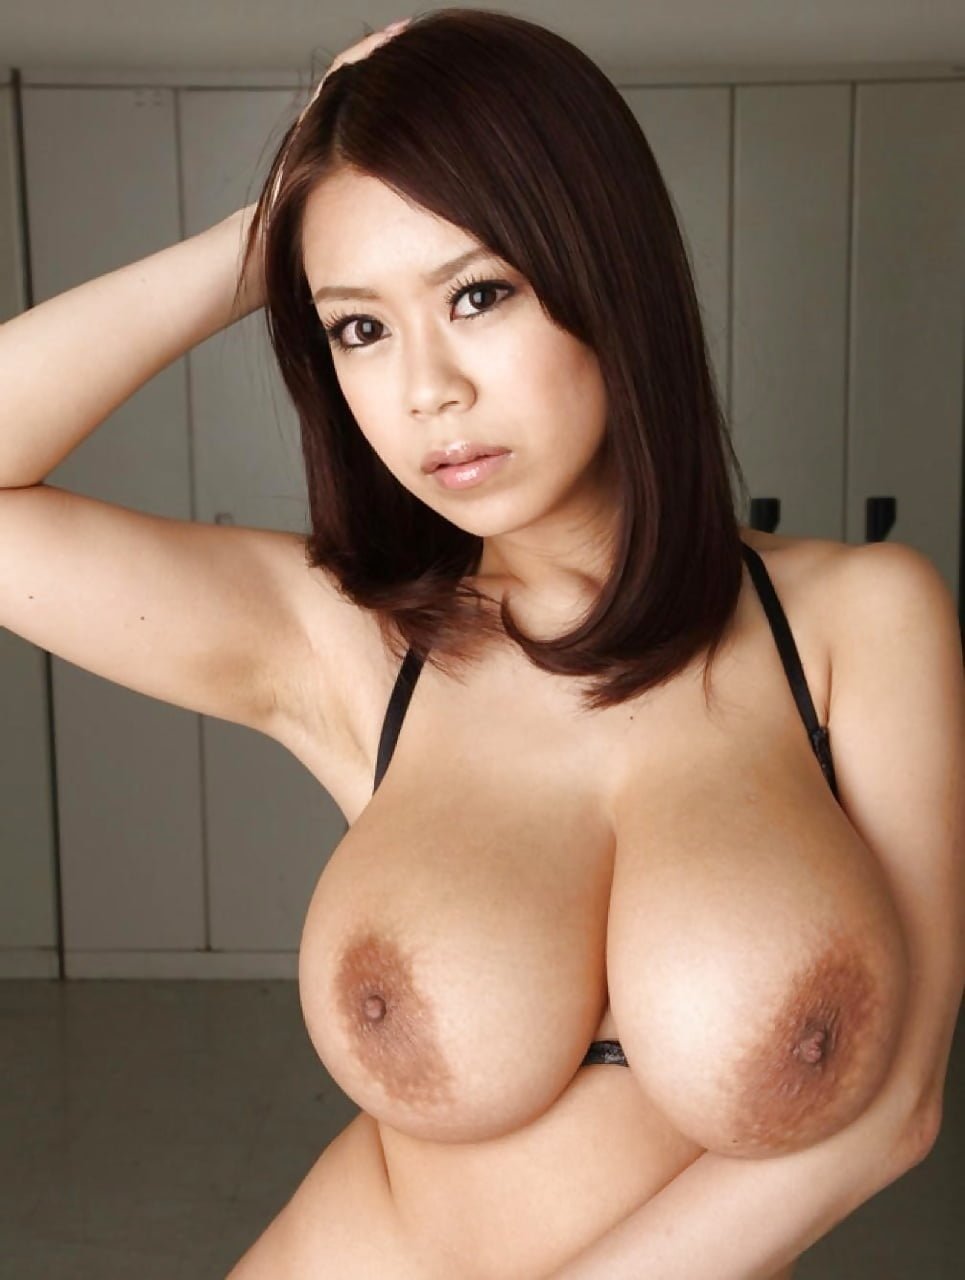 Free hd amateur asian with natural monster big tits porn photo